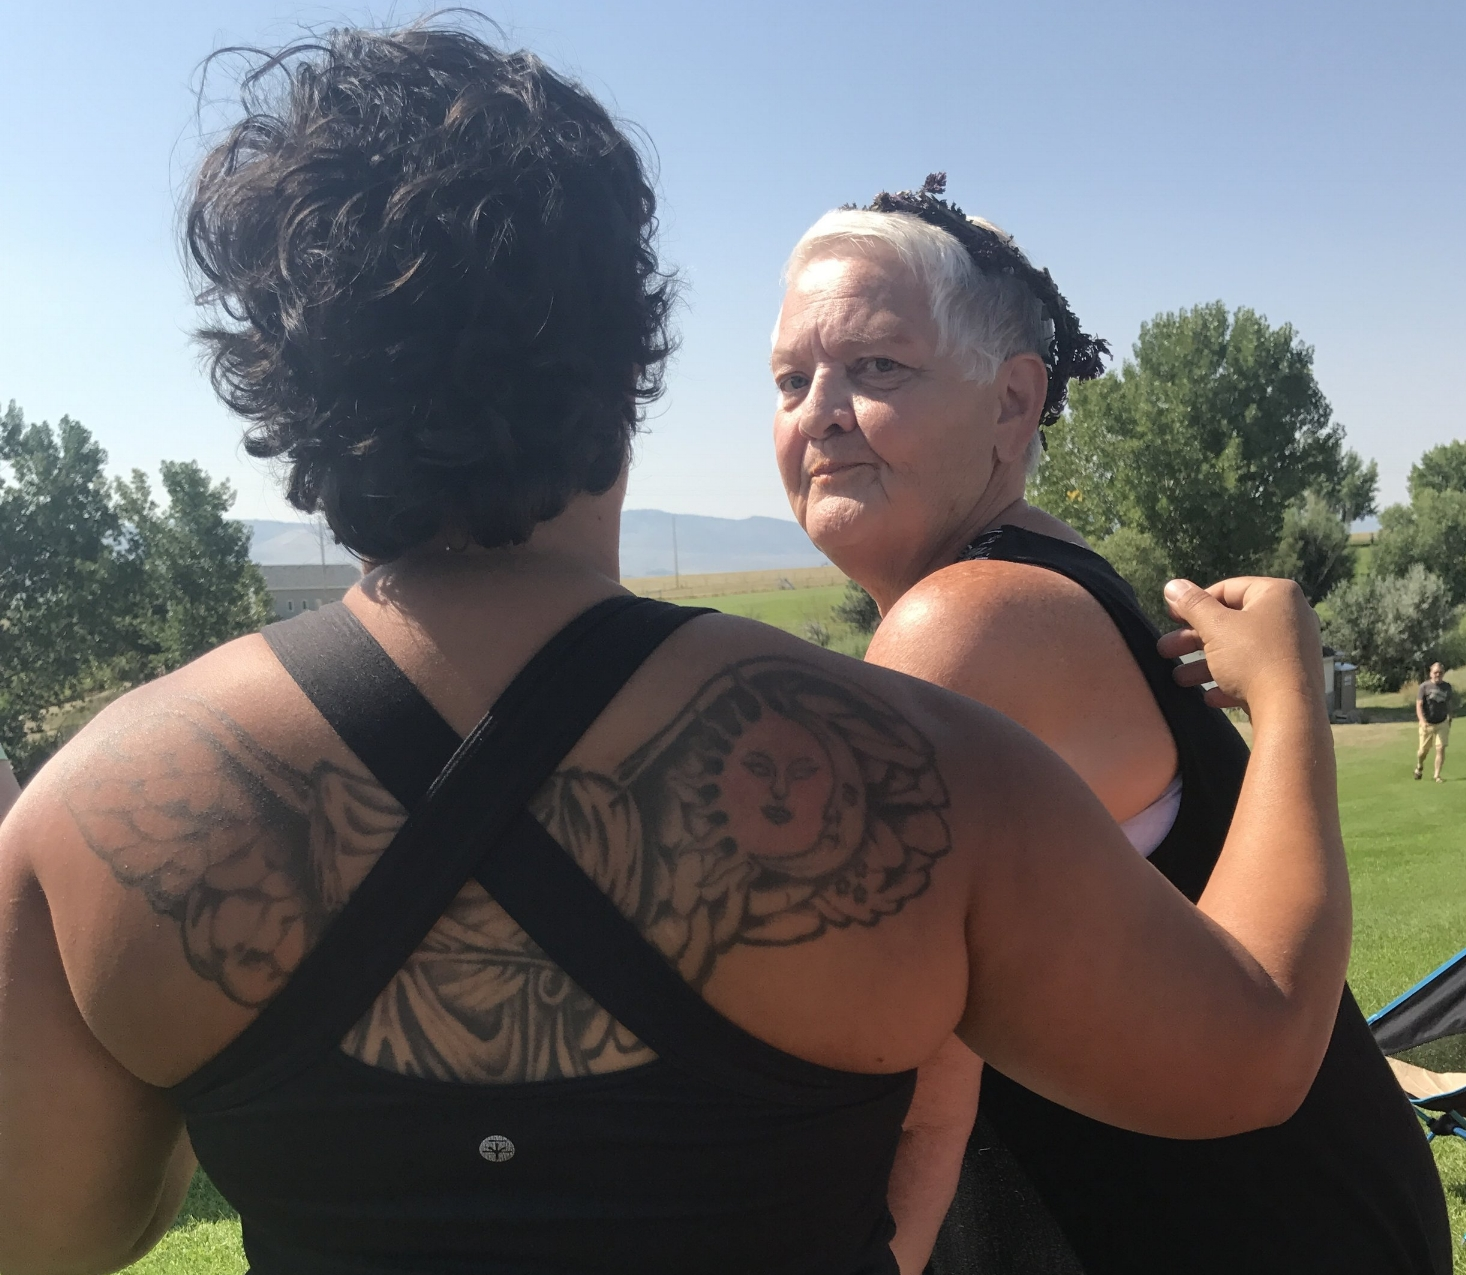 Kia with the eclipse tattoo and Becky's Mom, in whose backyard we camped.